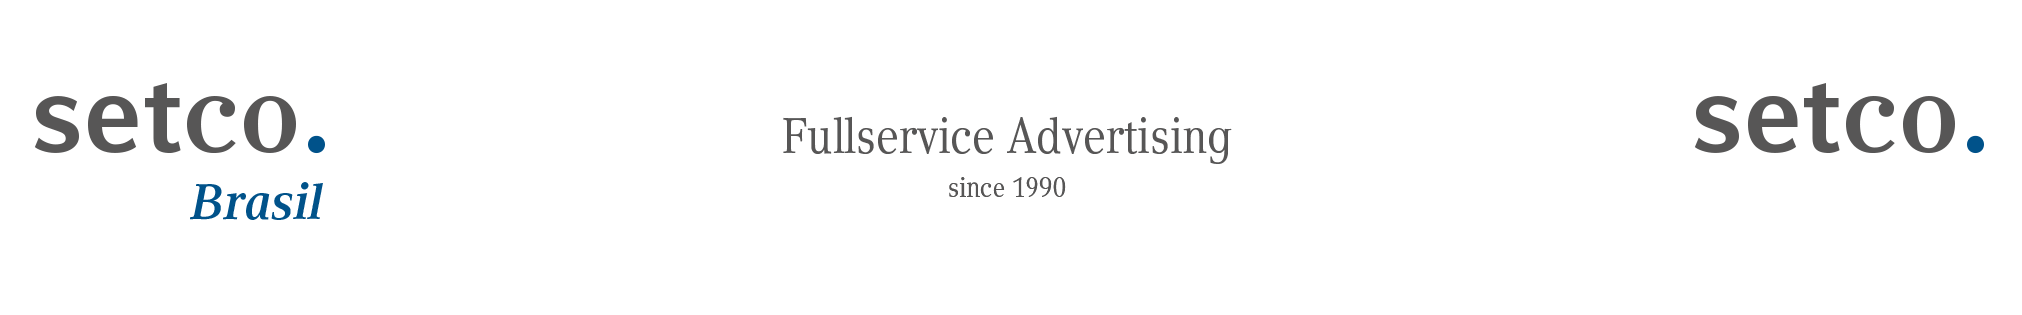 Fullservice Advertising Agency